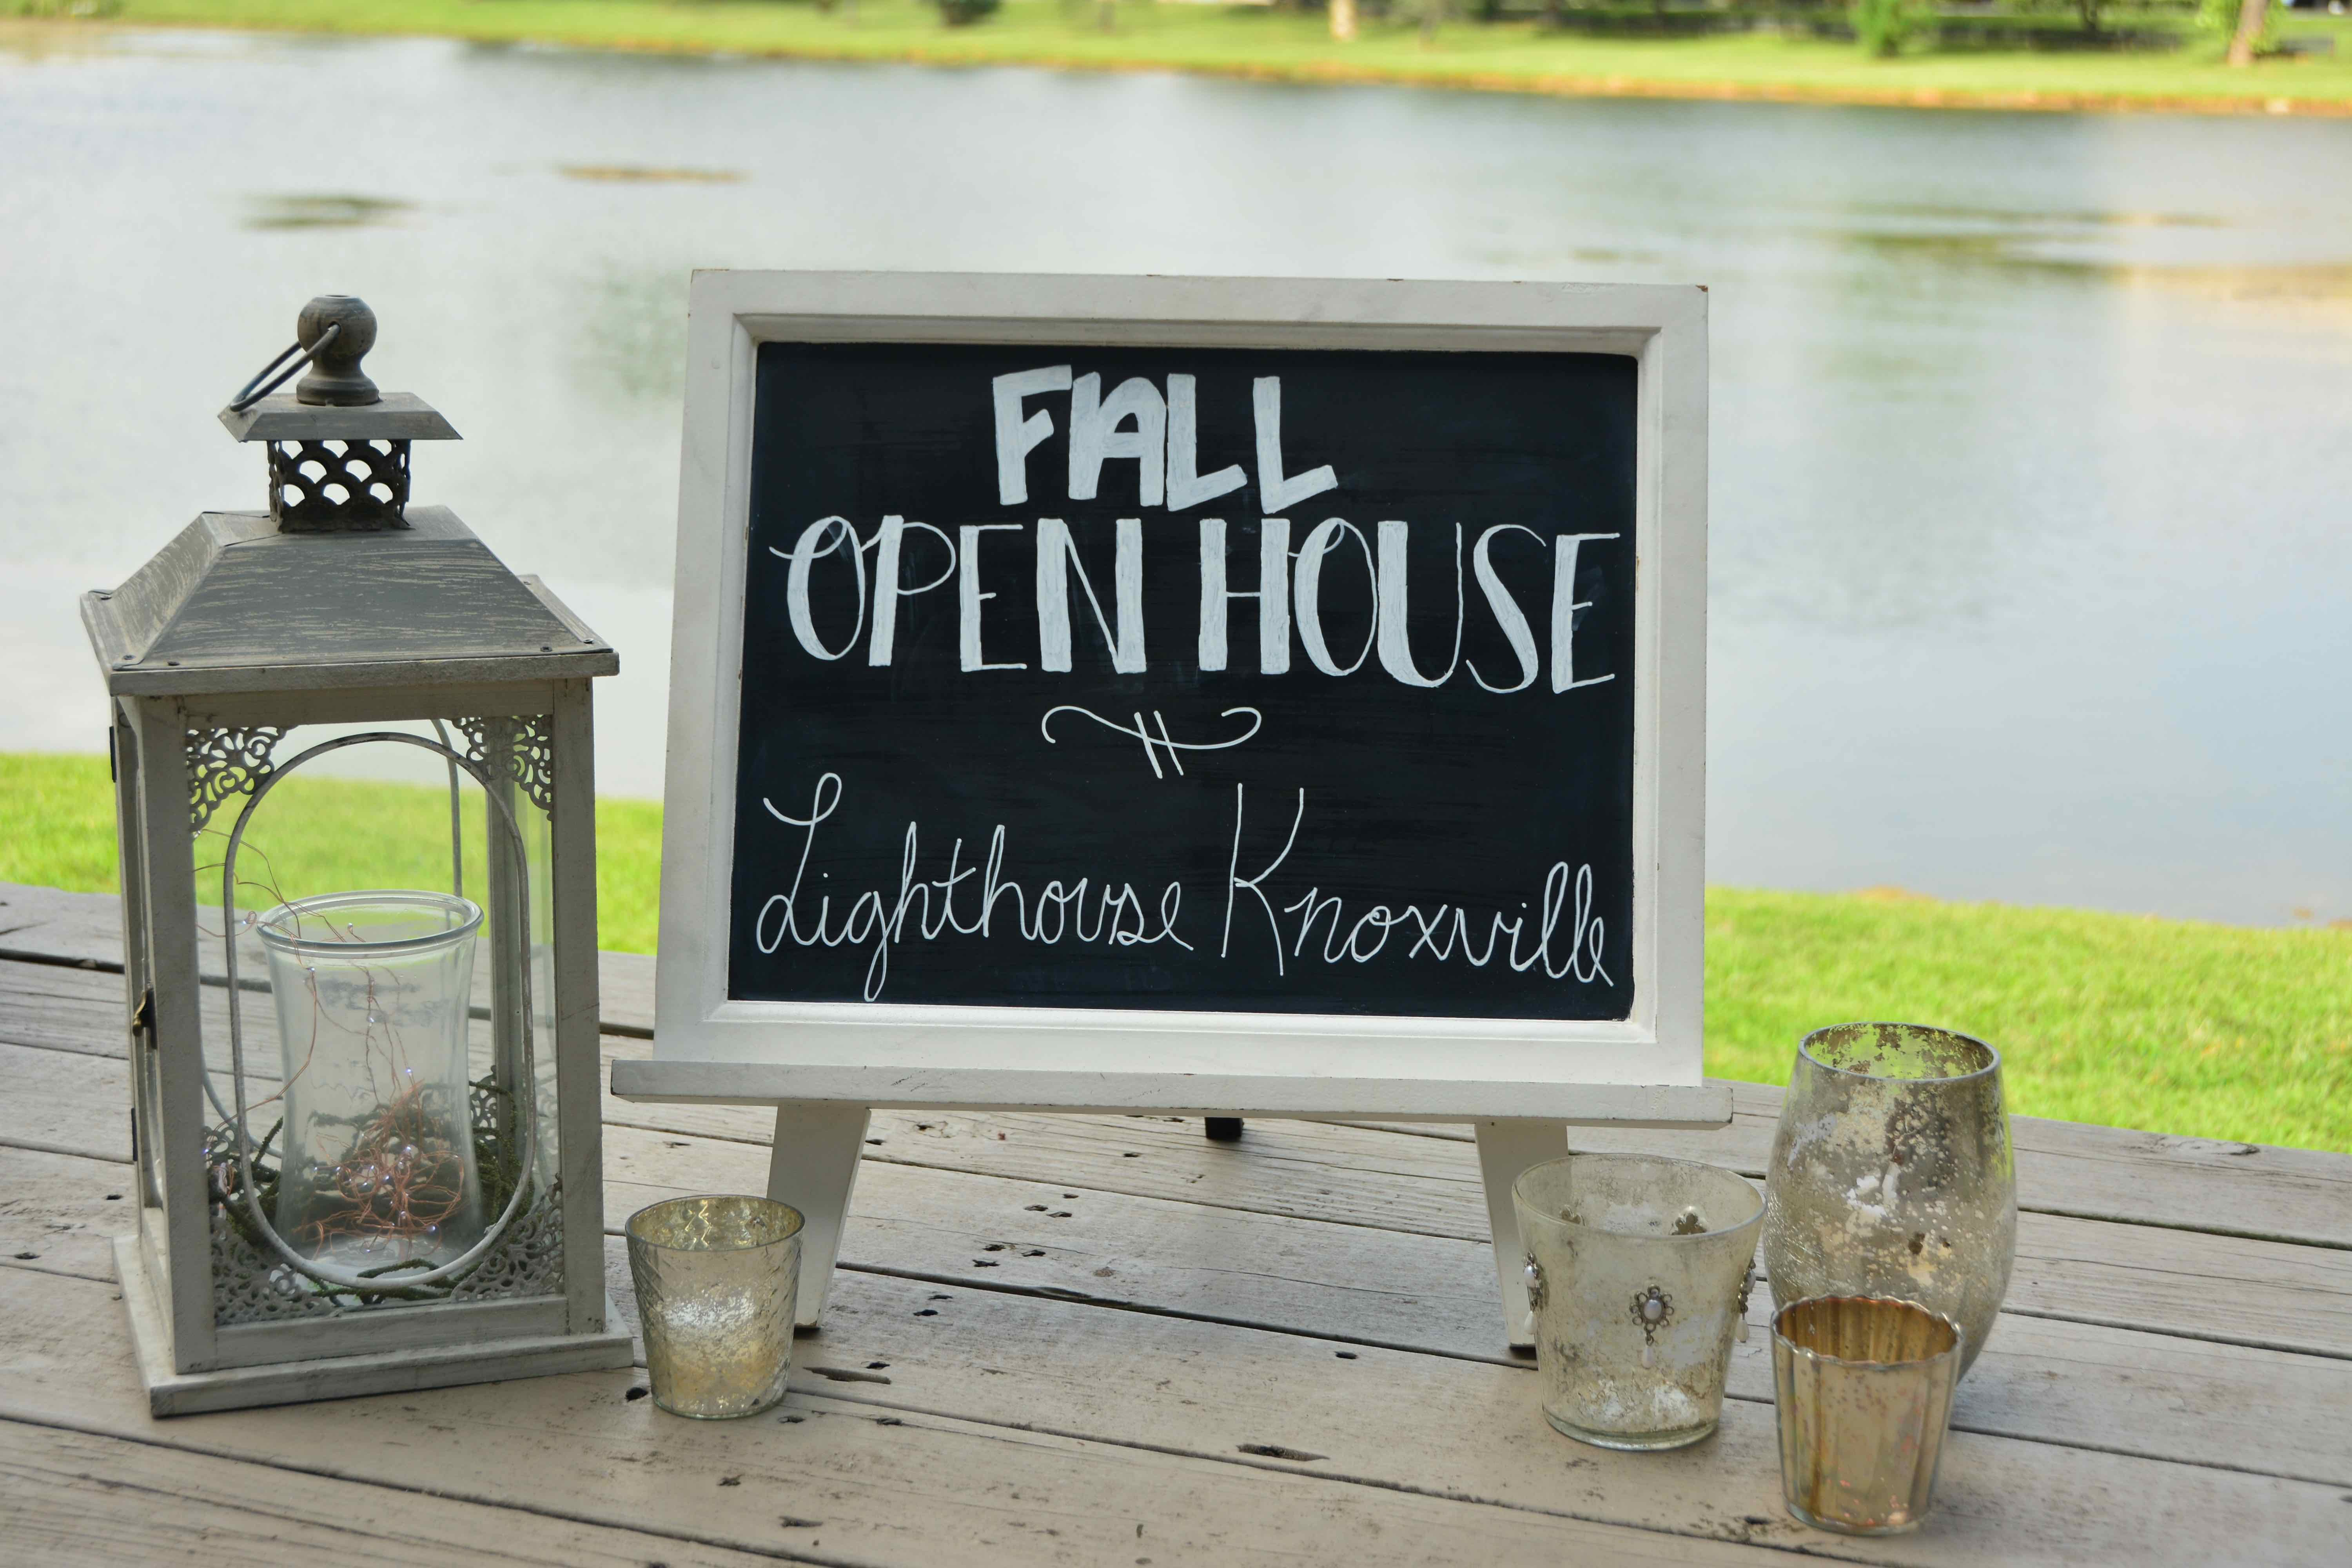 Fall Open House Lighthouse Knoxville